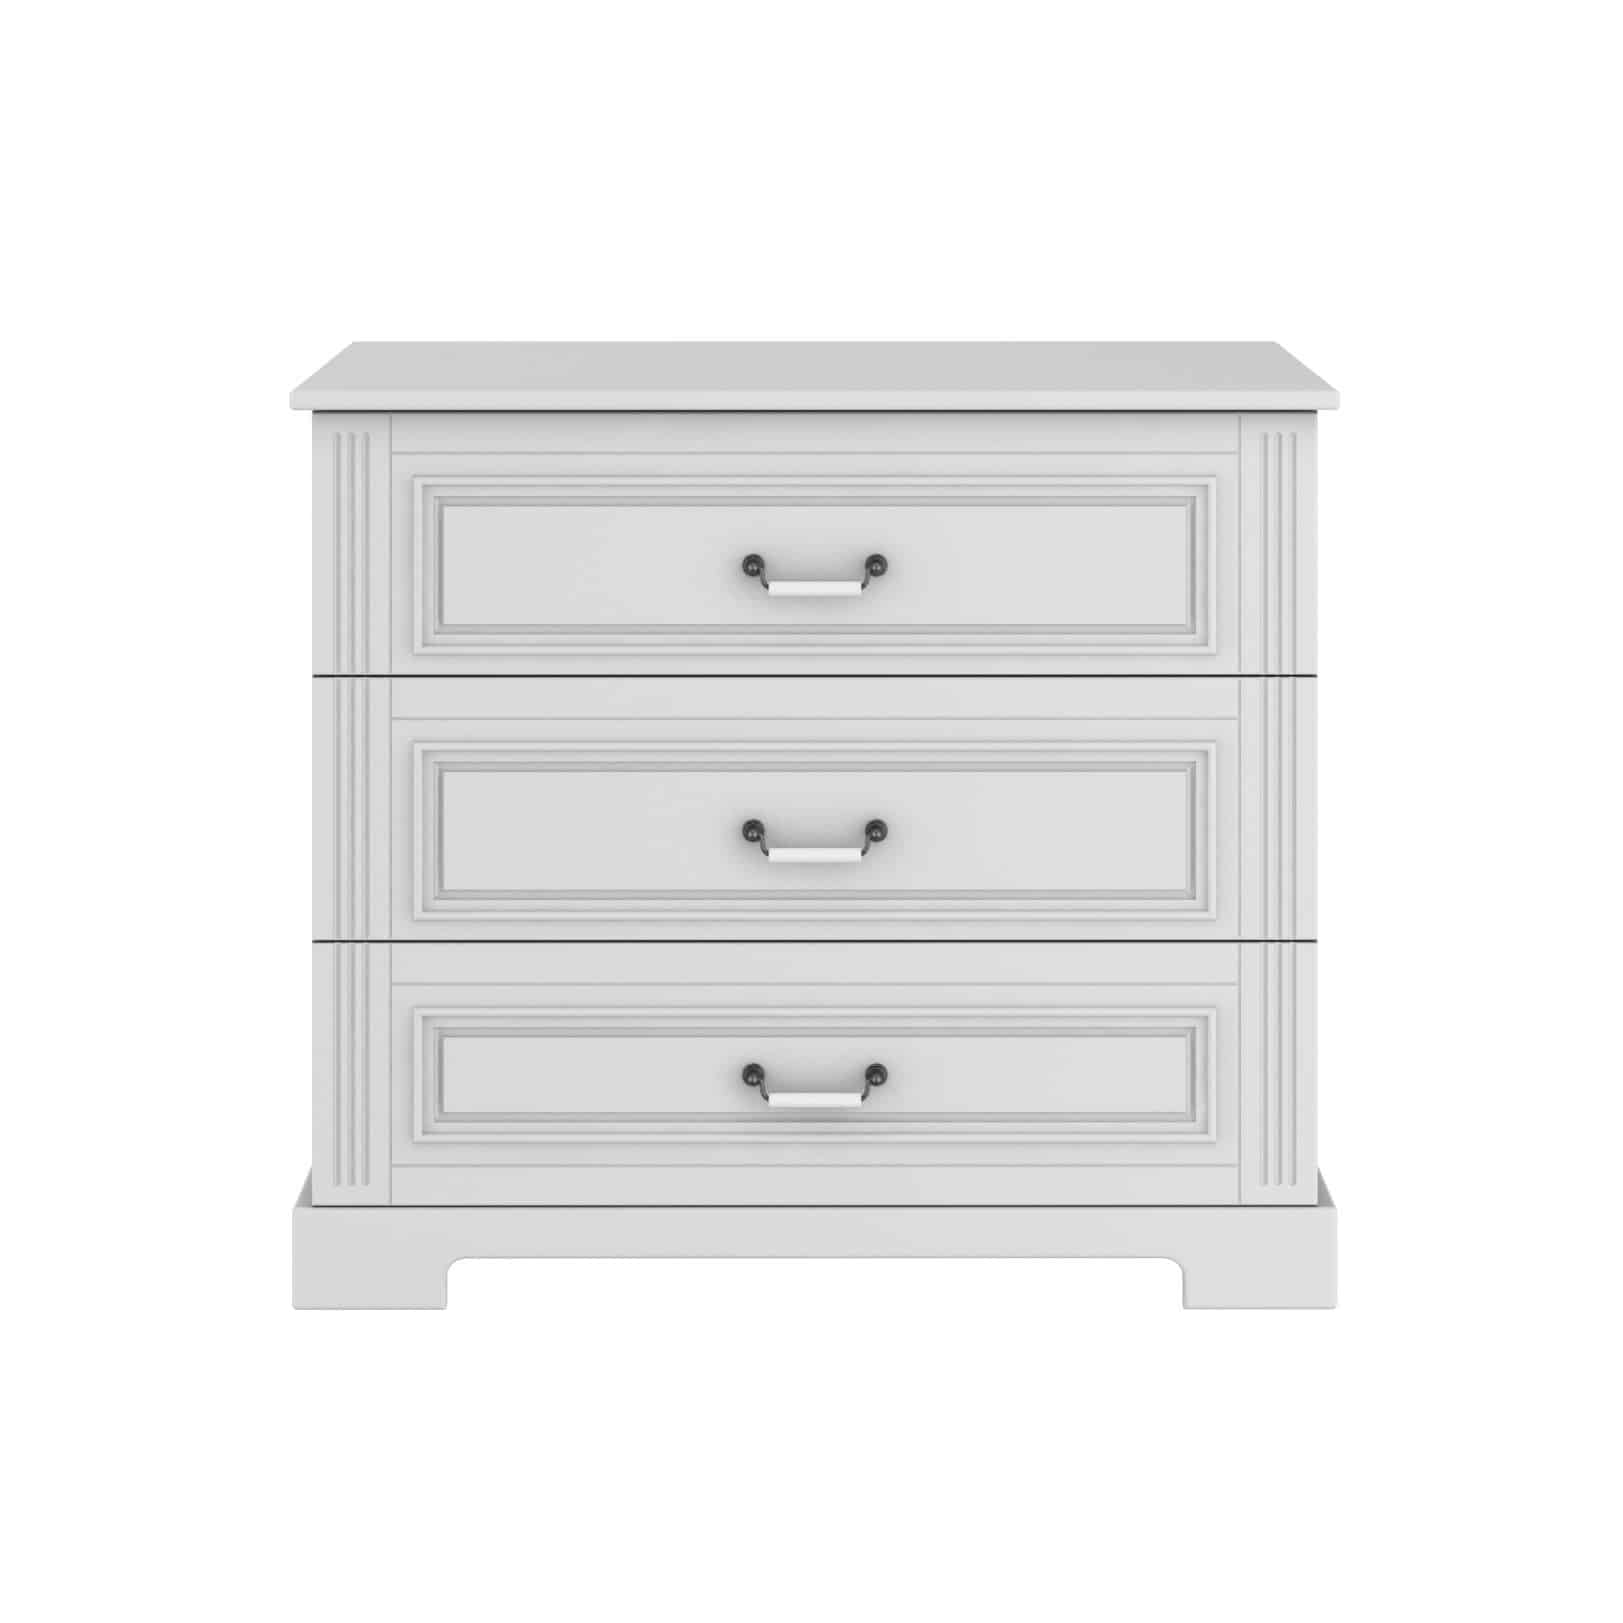 Ines - Chest of Drawers